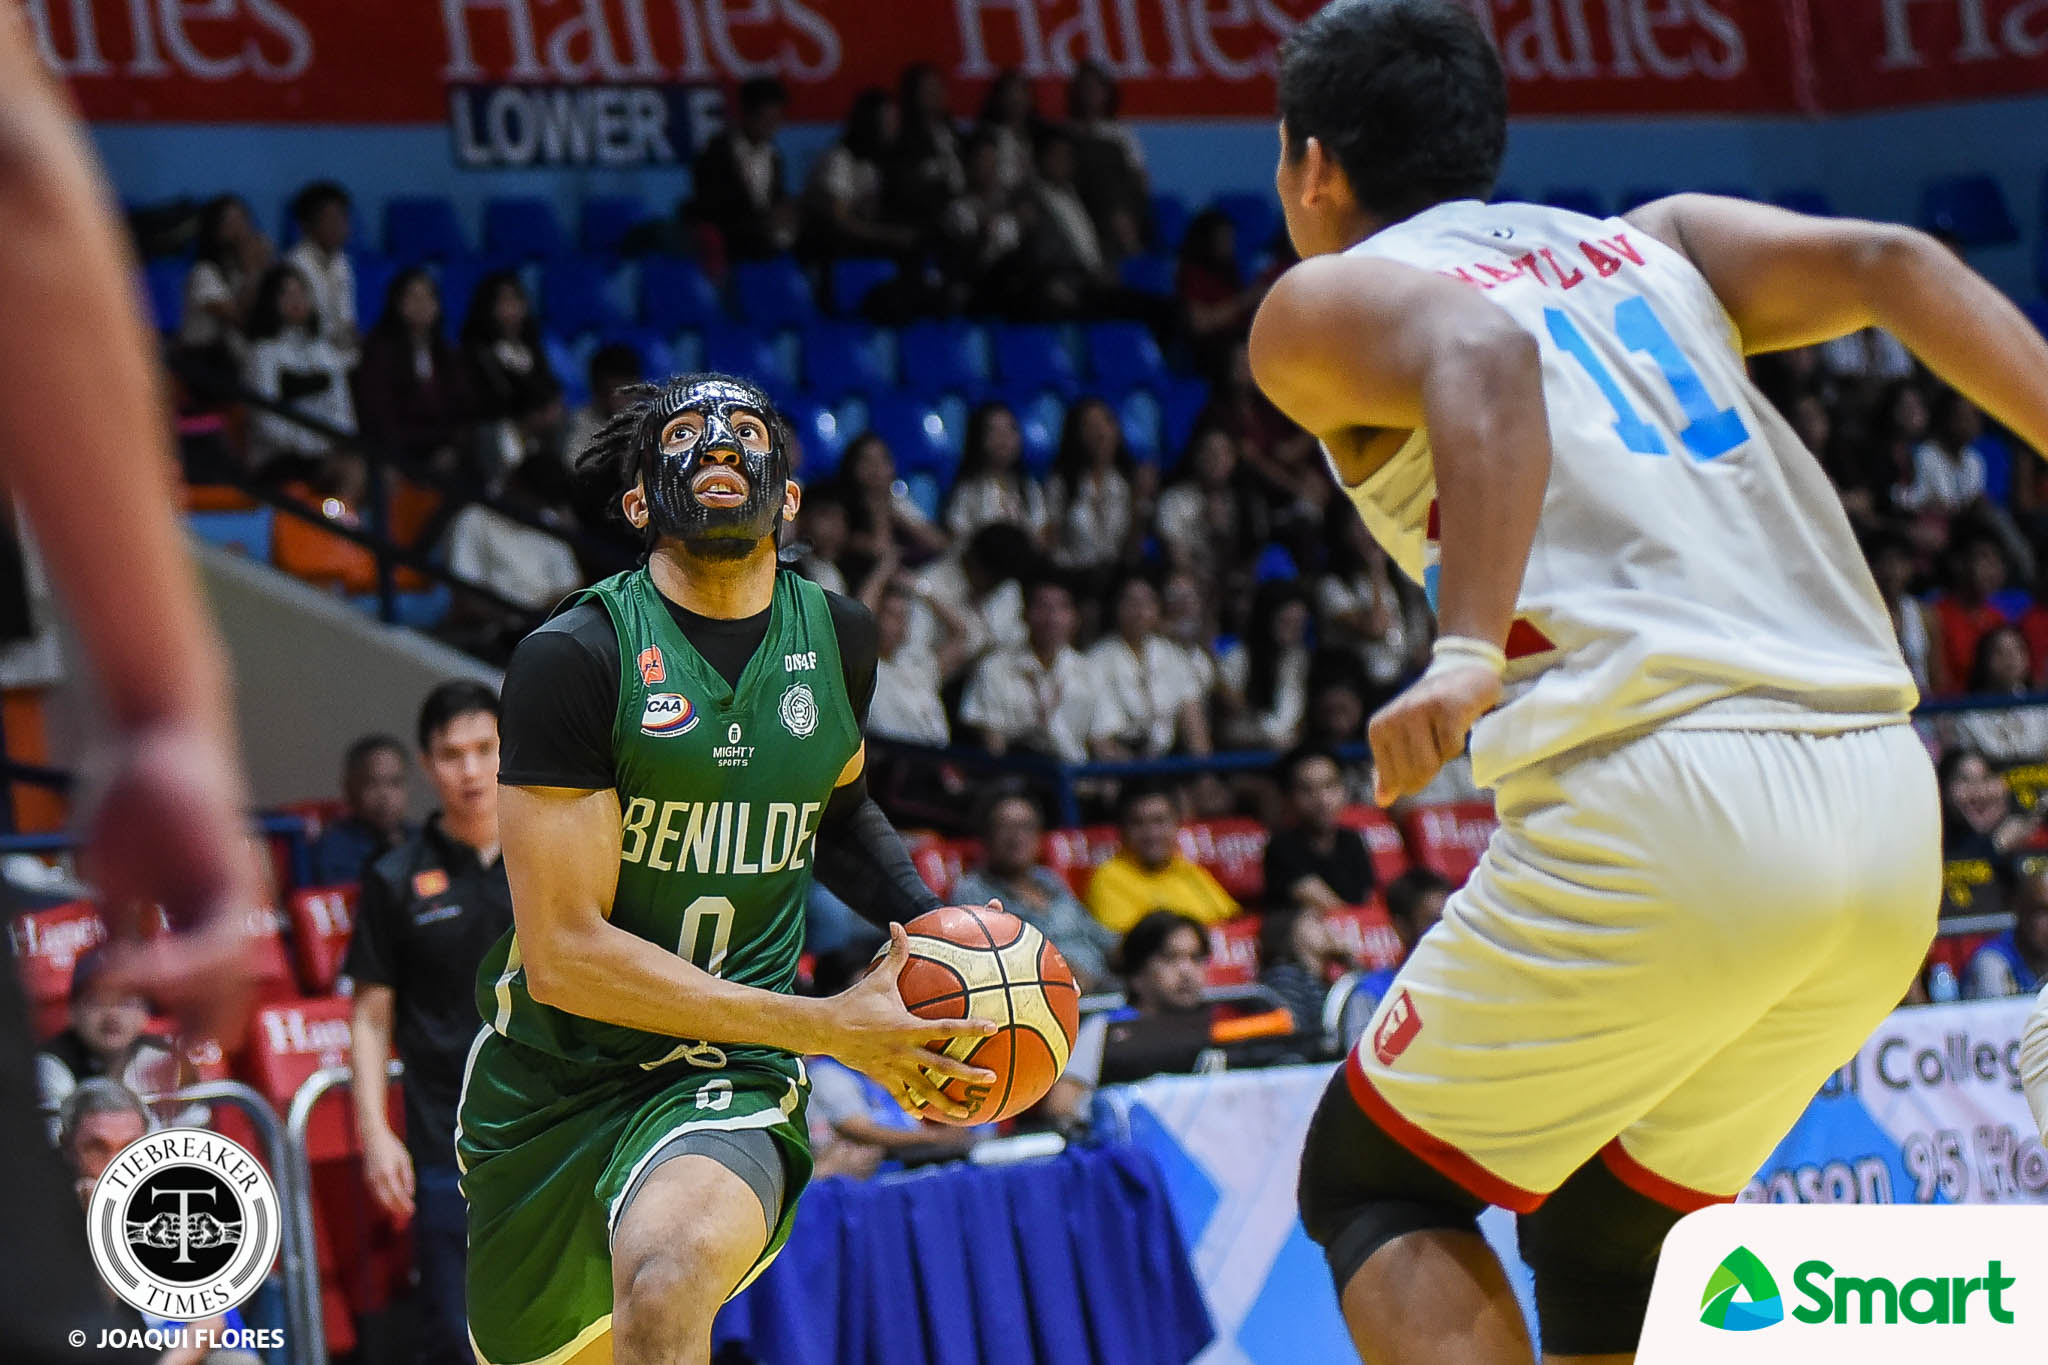 Tiebreaker Times Benilde finally ends nightmare skid, survives EAC fightback CSB EAC NCAA News Volleyball  Yankie Haruna TY Tang Oliver Bunyi NCAA Season 95 Seniors Basketball NCAA Season 95 Marwin Taywan Justin Gutang JP Maguliano jc luciano EAC Seniors Basketball Benilde Seniors Basketball